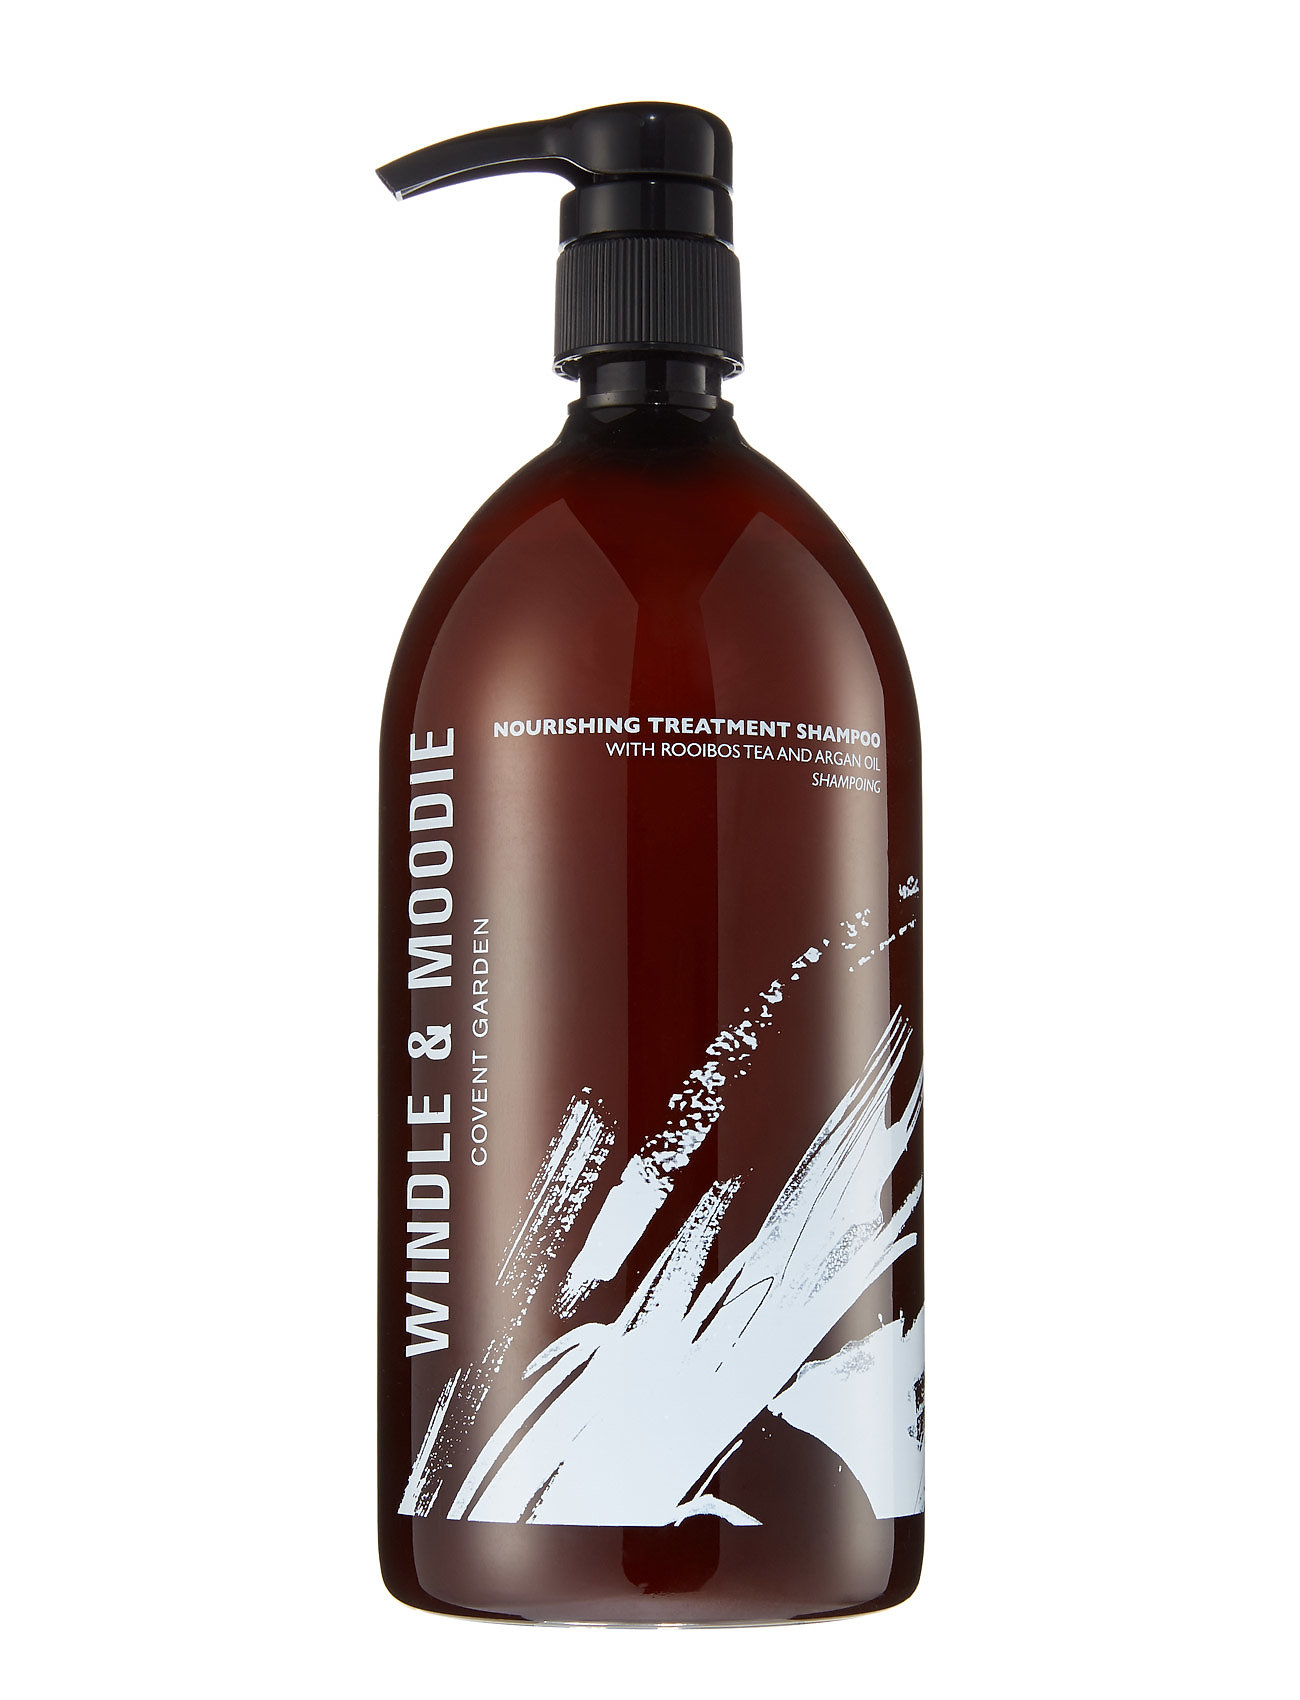 windle & moodie Nourishing treatment shampoo fra boozt.com dk